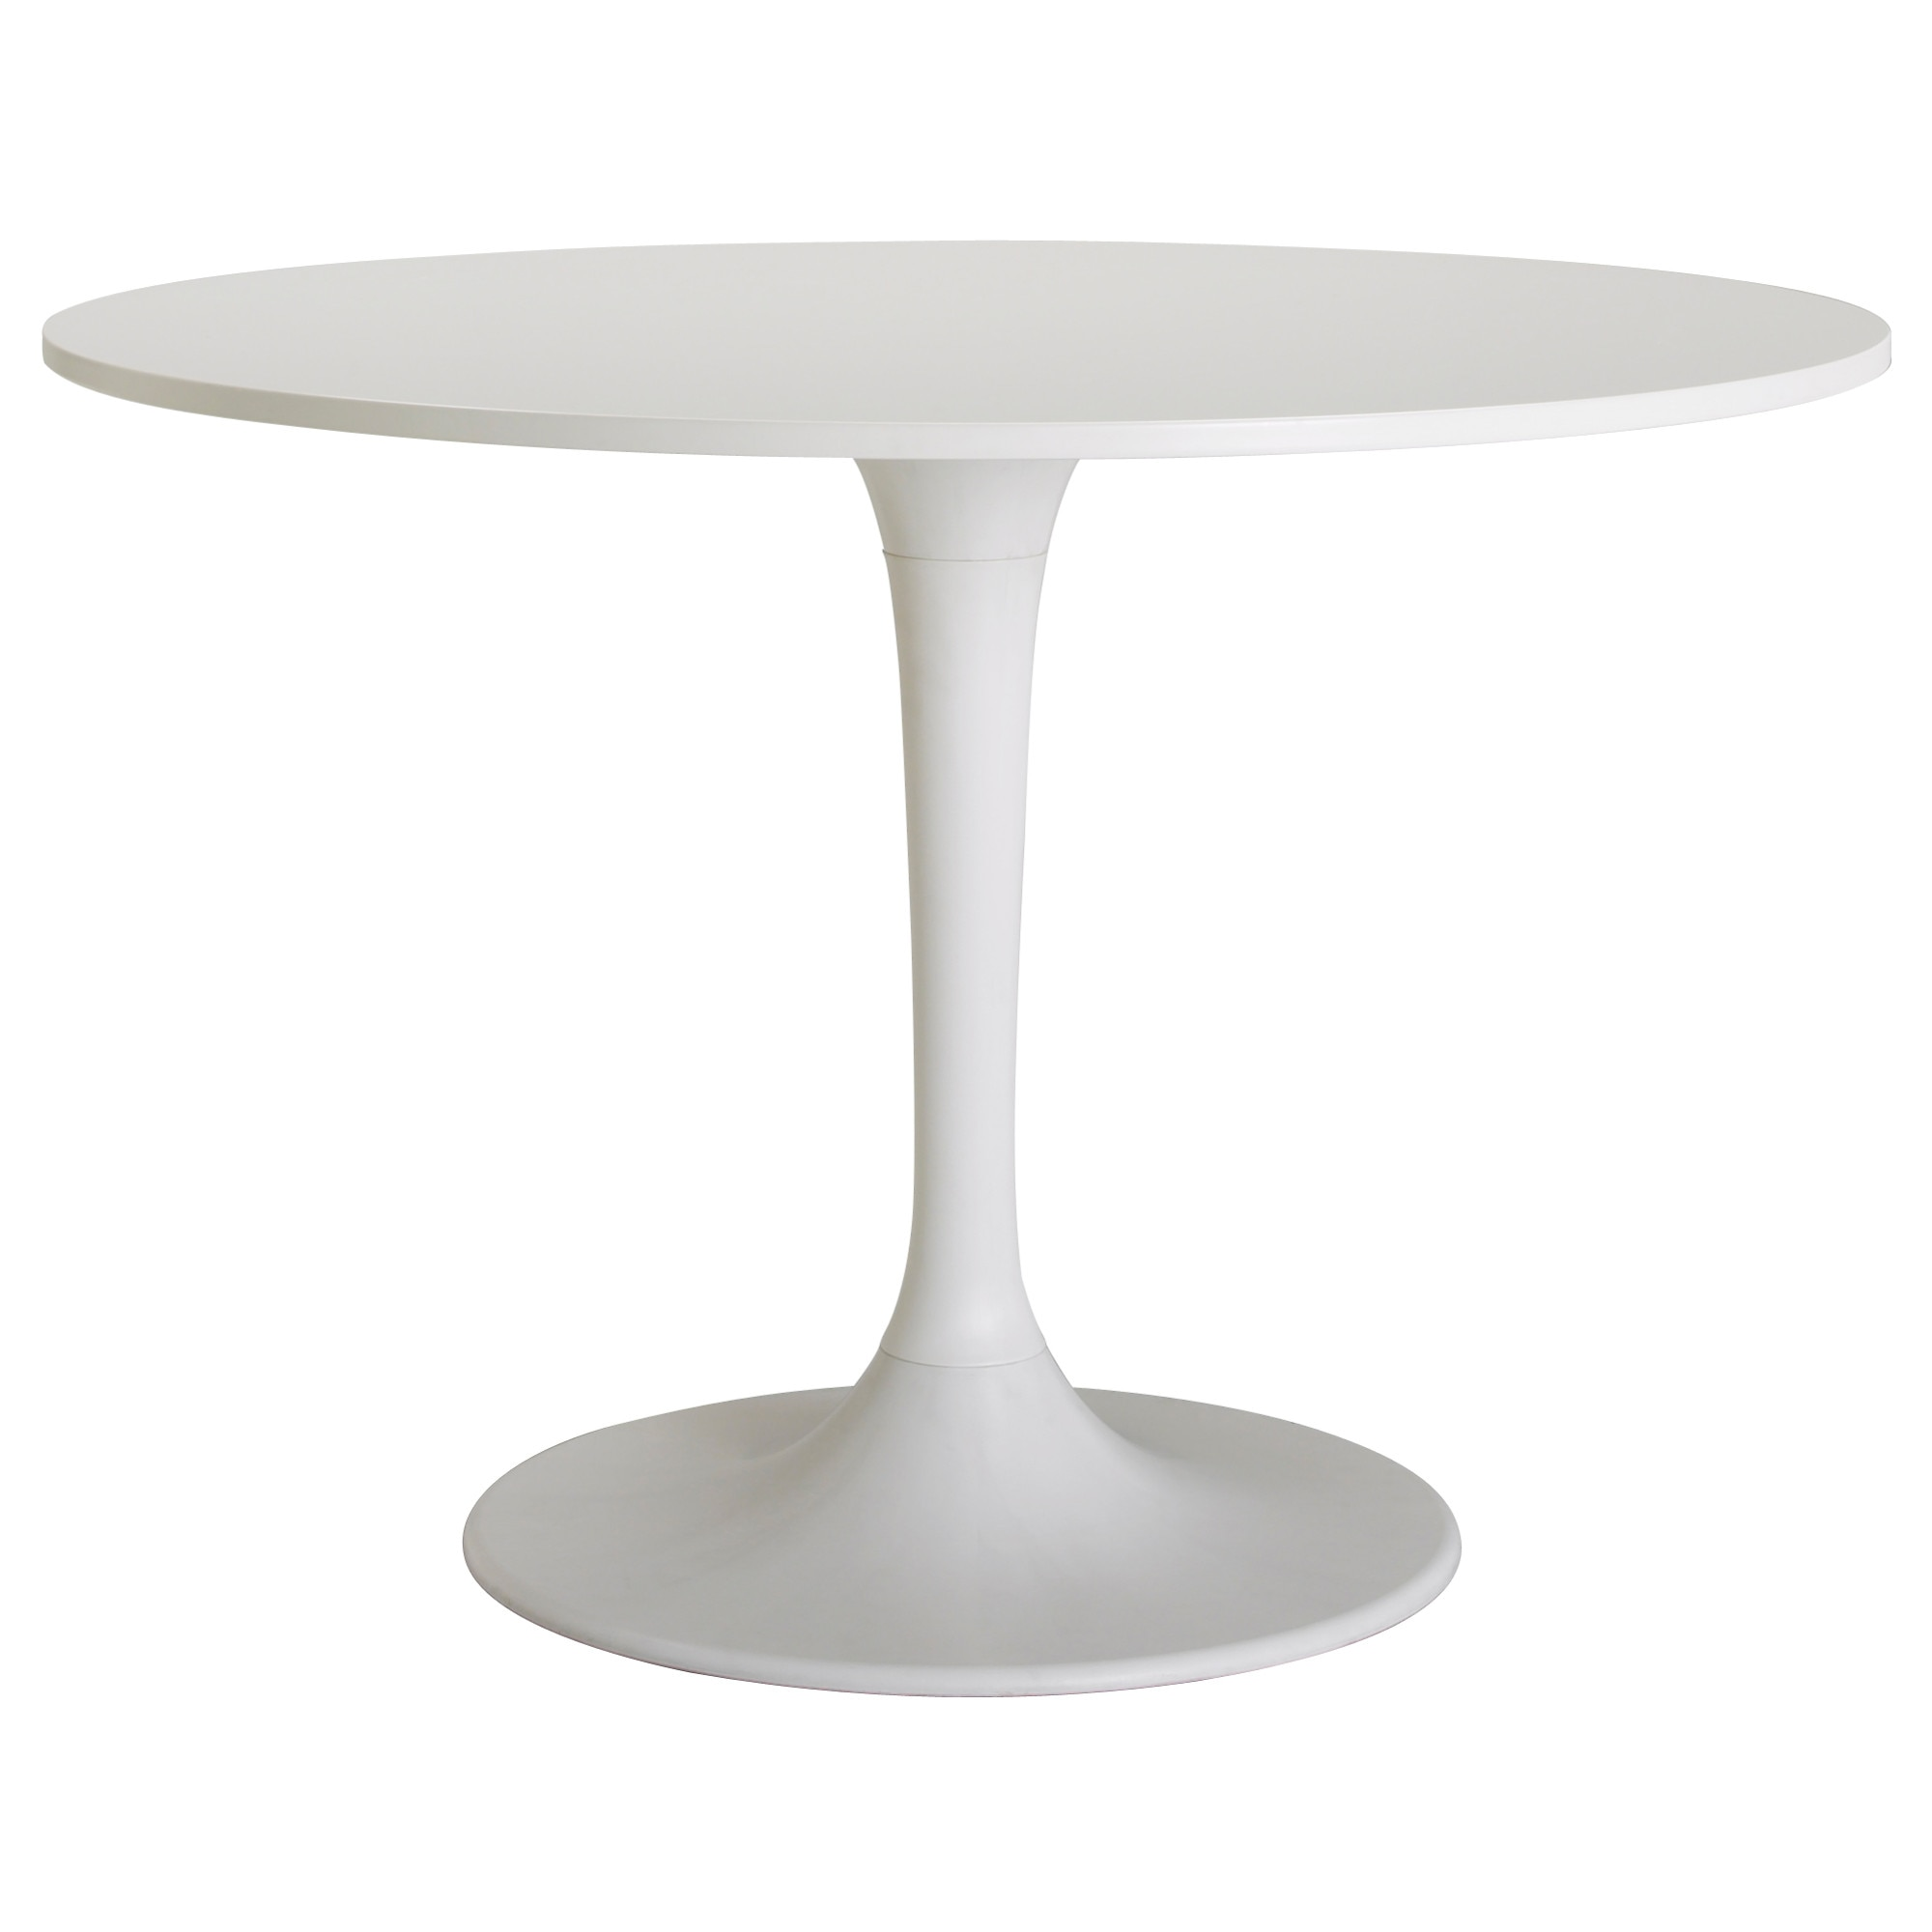 docksta table ikea - Round White Dining Table